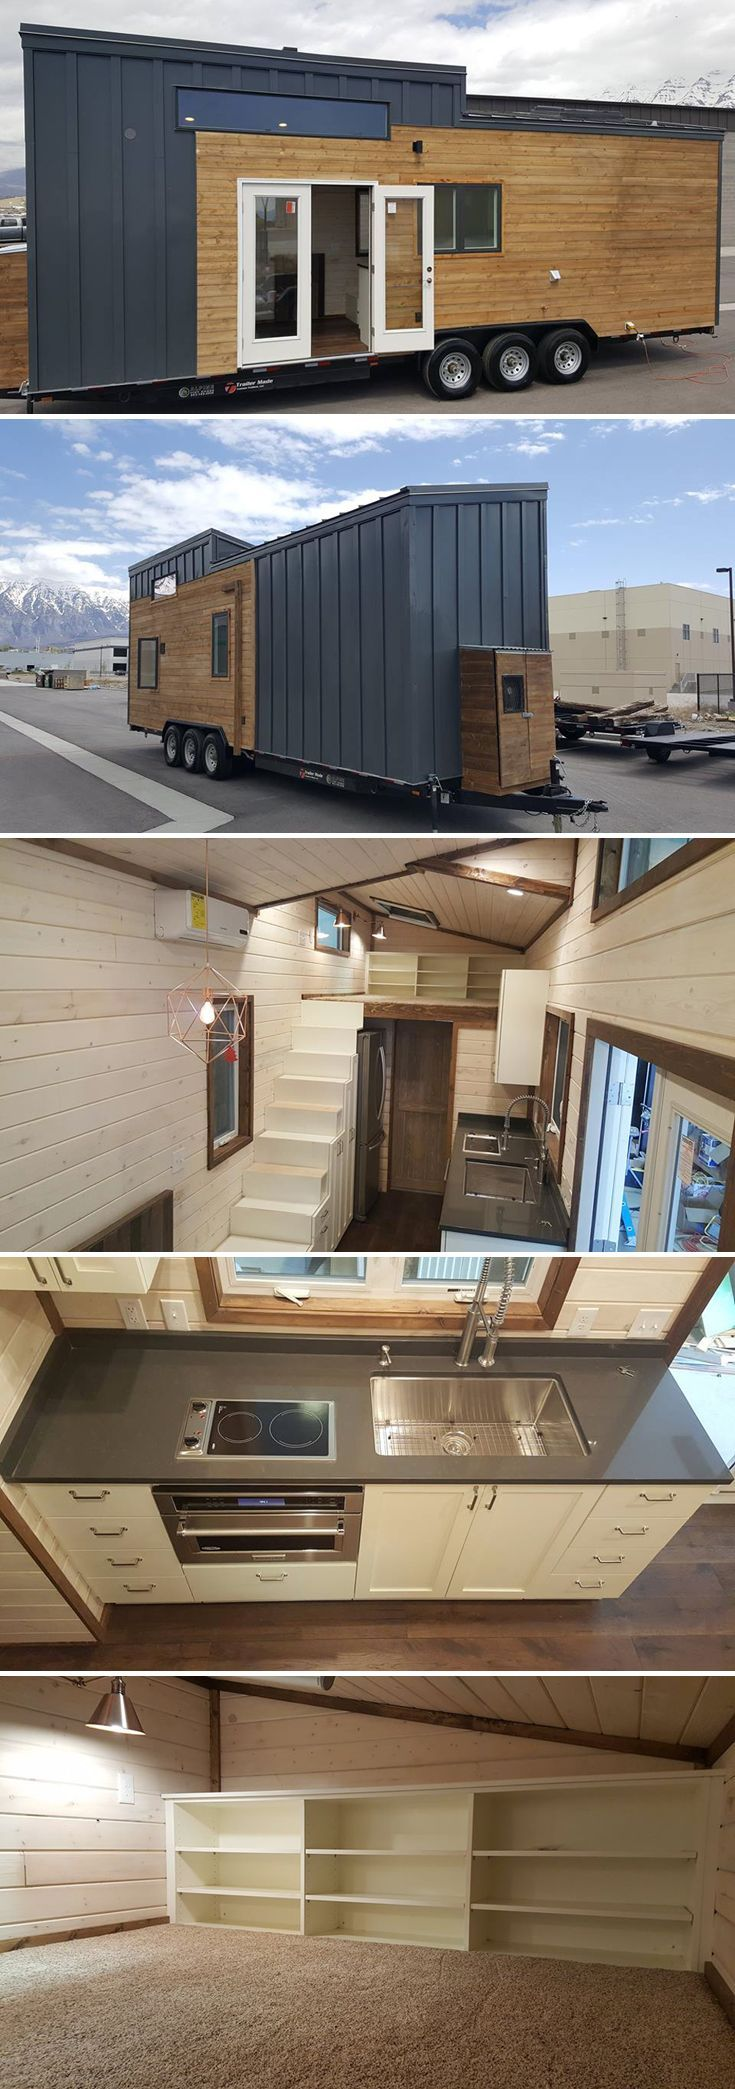 Best 25 tiny house appliances ideas on pinterest small kitchen appliances oven burner and - Dishwasher small space plan ...